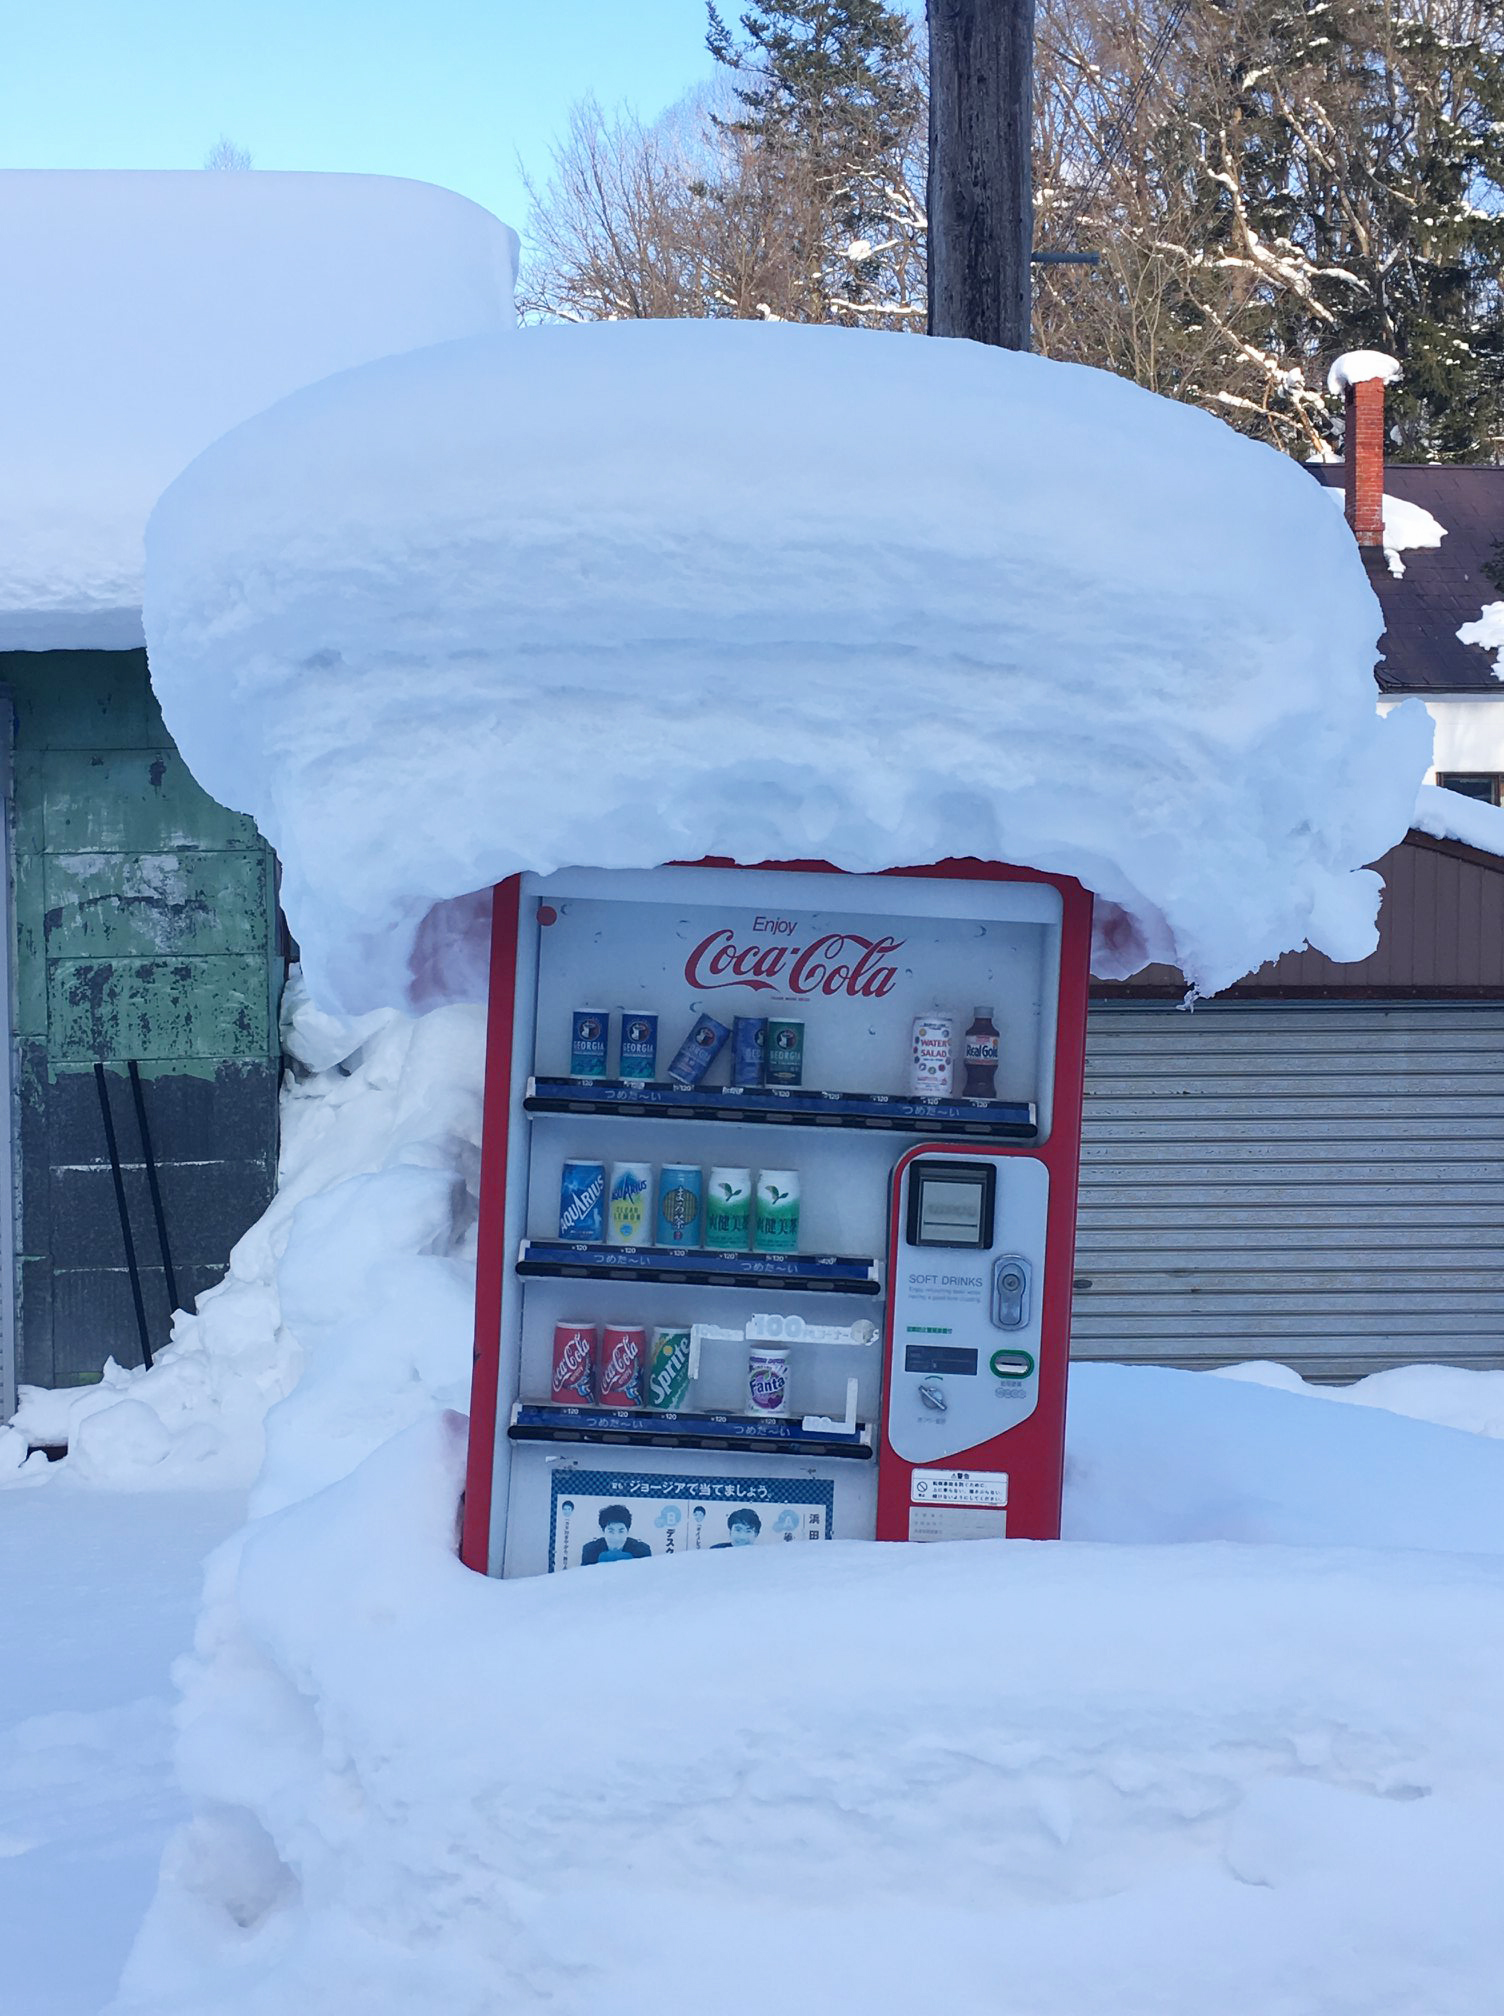 Japan has the highest density of vending machines in the world (1 machine for every 23 people). I loved the outdoor machines we found in Hokkaido, many of them piled up with snow.